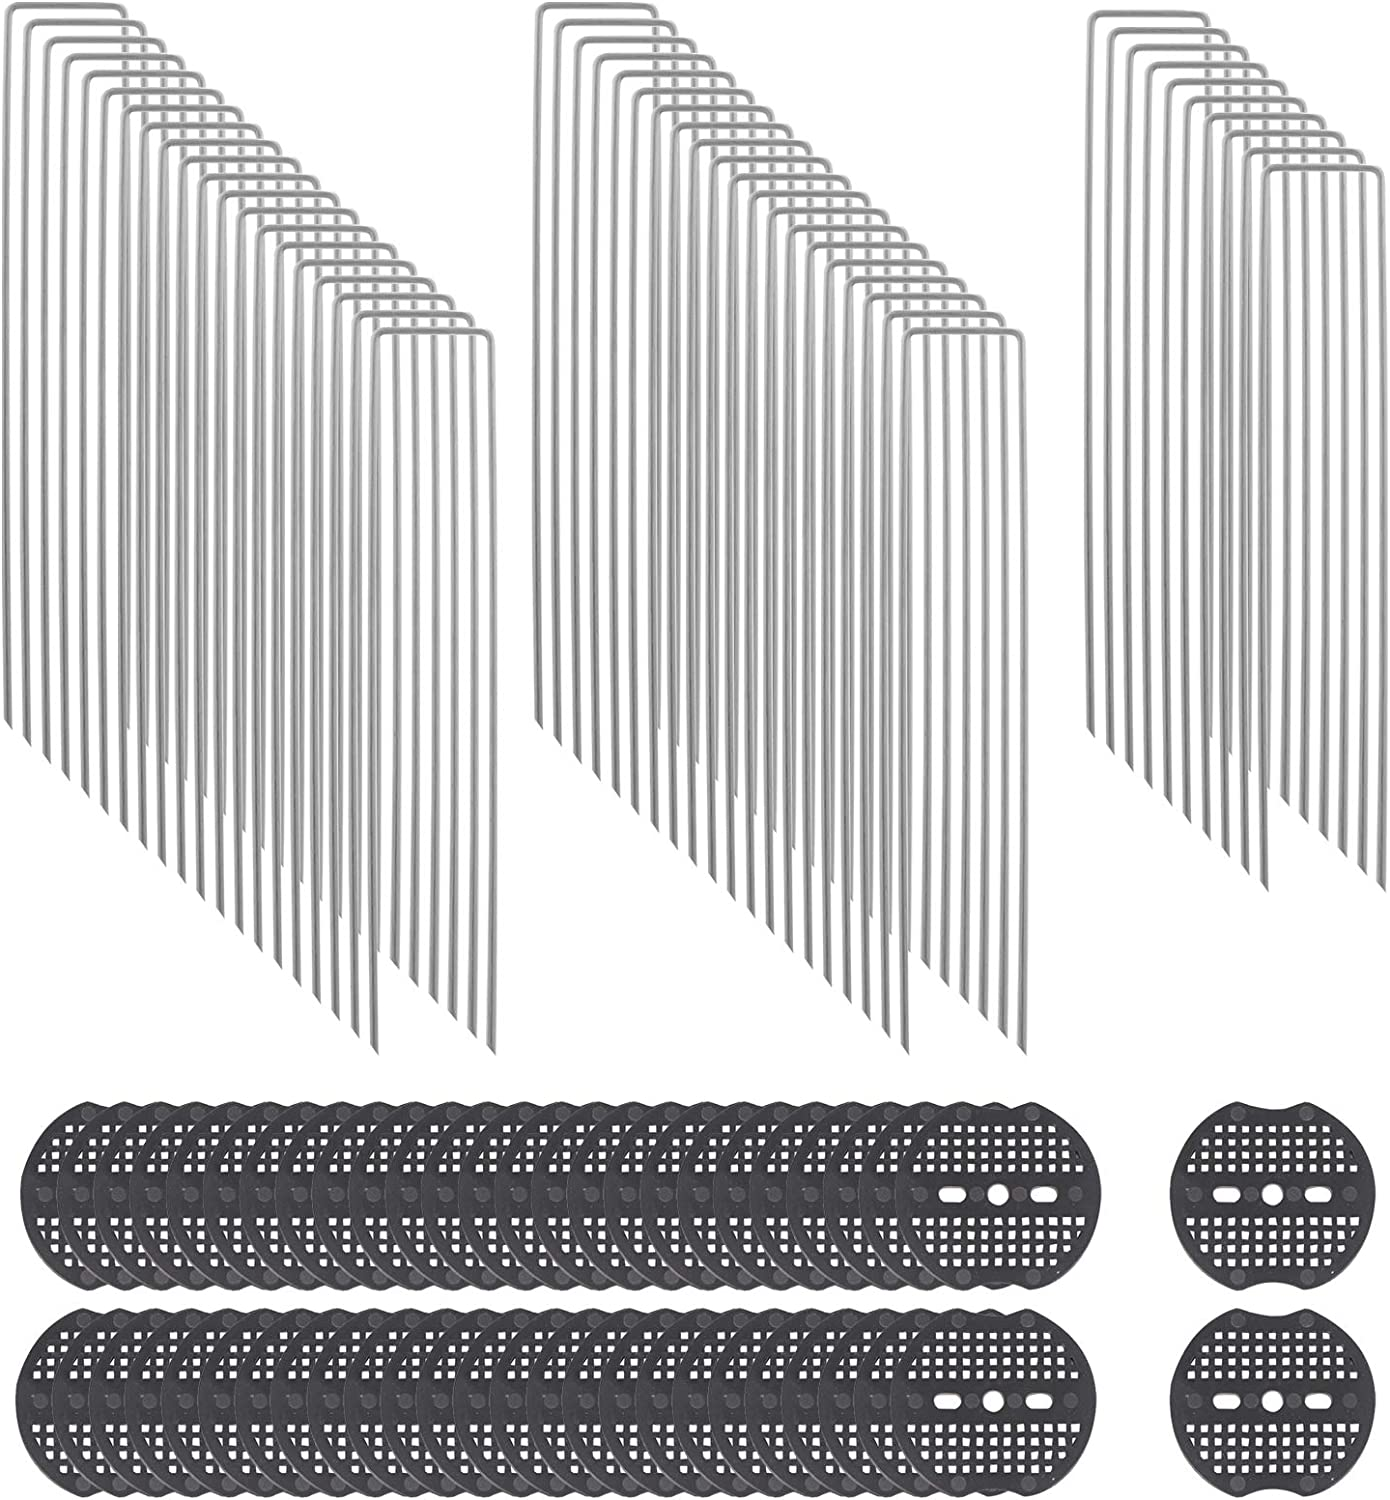 PENCK 8 Inch Garden Staples 11 Gauge Galvanized Landscape Sod Stakes with Plastic Gasket U-Shaped Plant Support Garden Stakes for Weed Barrier Fabric Ground Cover Dripper Irrigation Tubing, 50 Pack